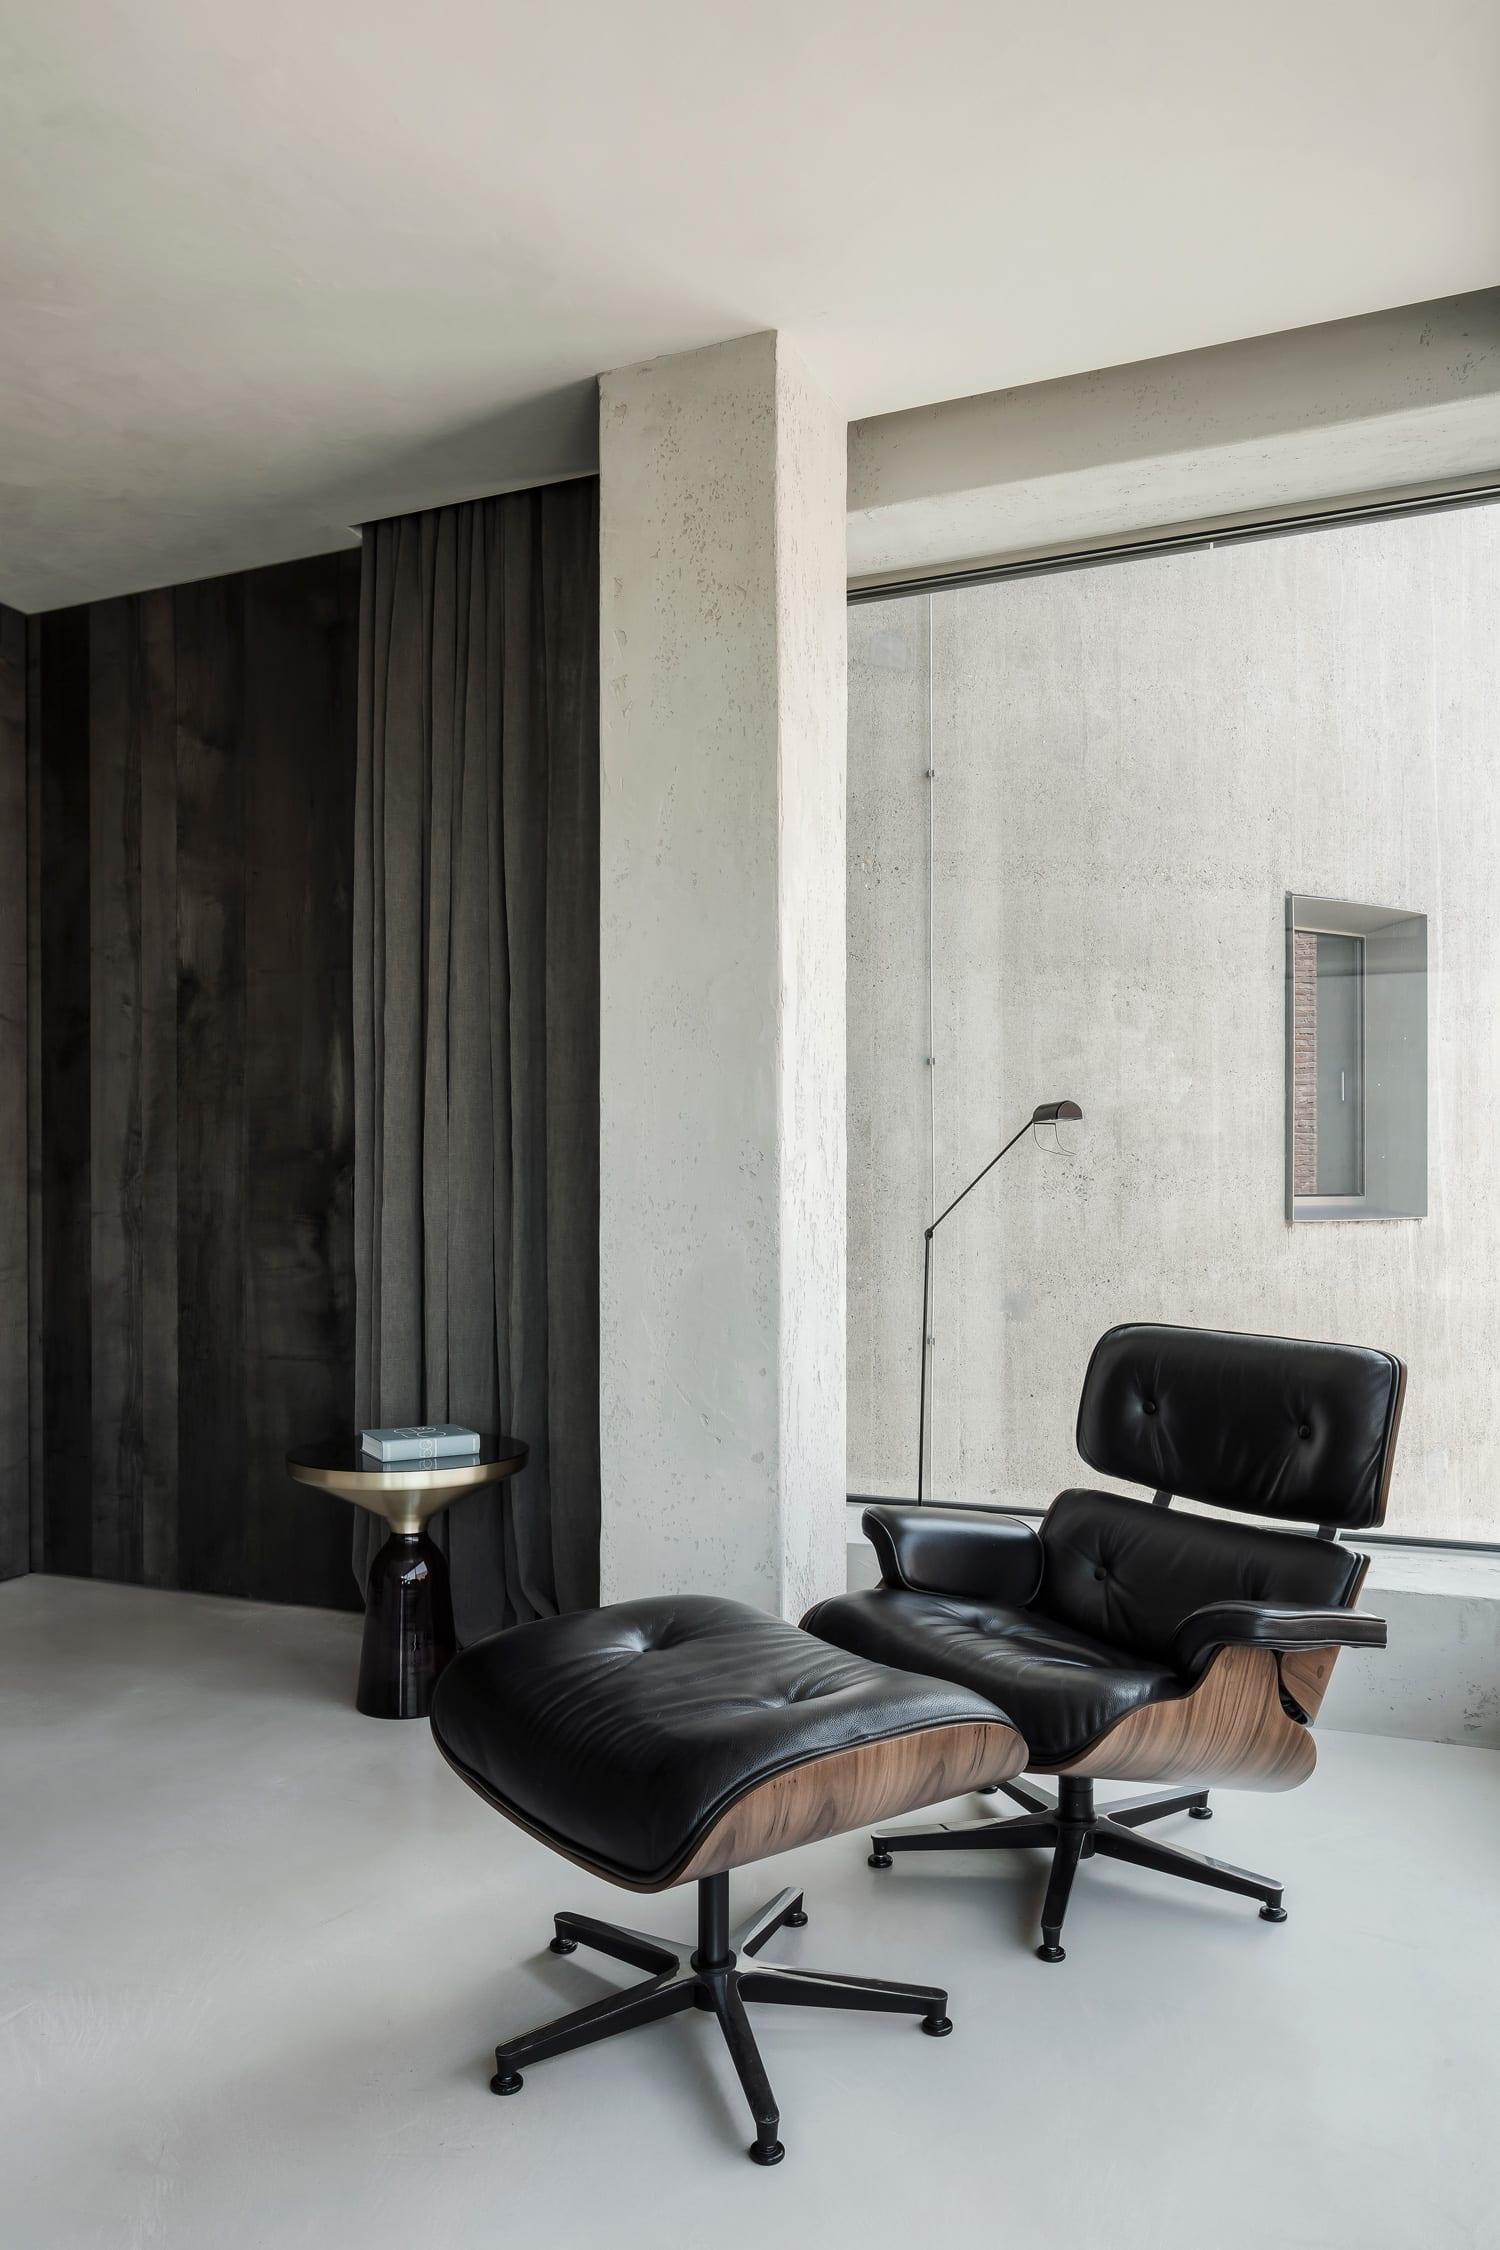 Silo Apartment M M By Arjaan De Feyter | Yellowtrace